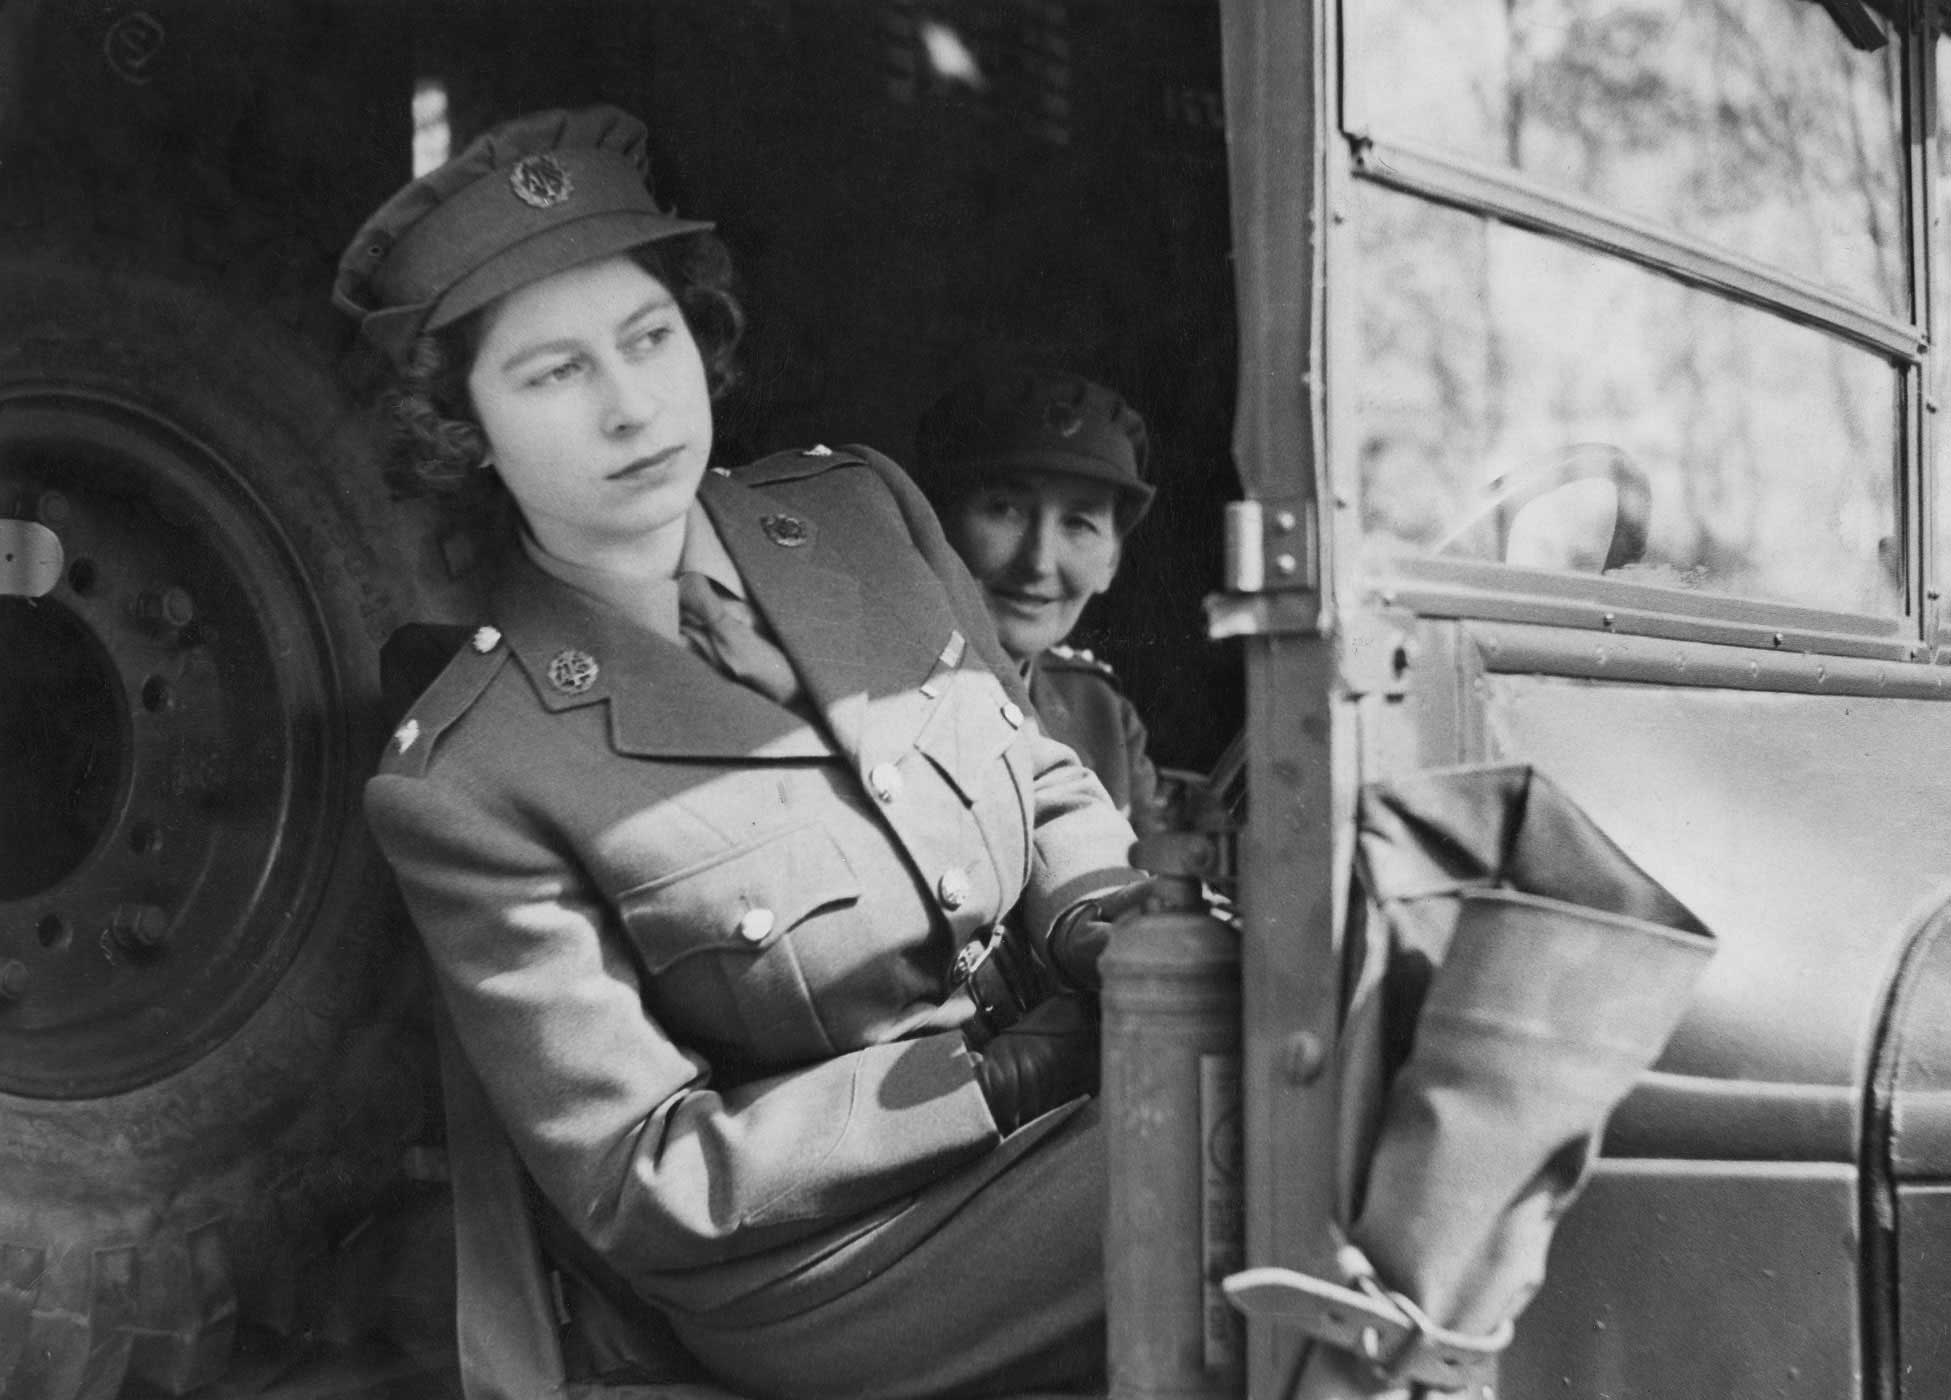 Princess Elizabeth drives an ambulance on April 10, 1945. Just two months earlier, the Princess had joined the Auxiliary Territorial Service, which was the women's arm of the British army. She trained as a driver and mechanic.